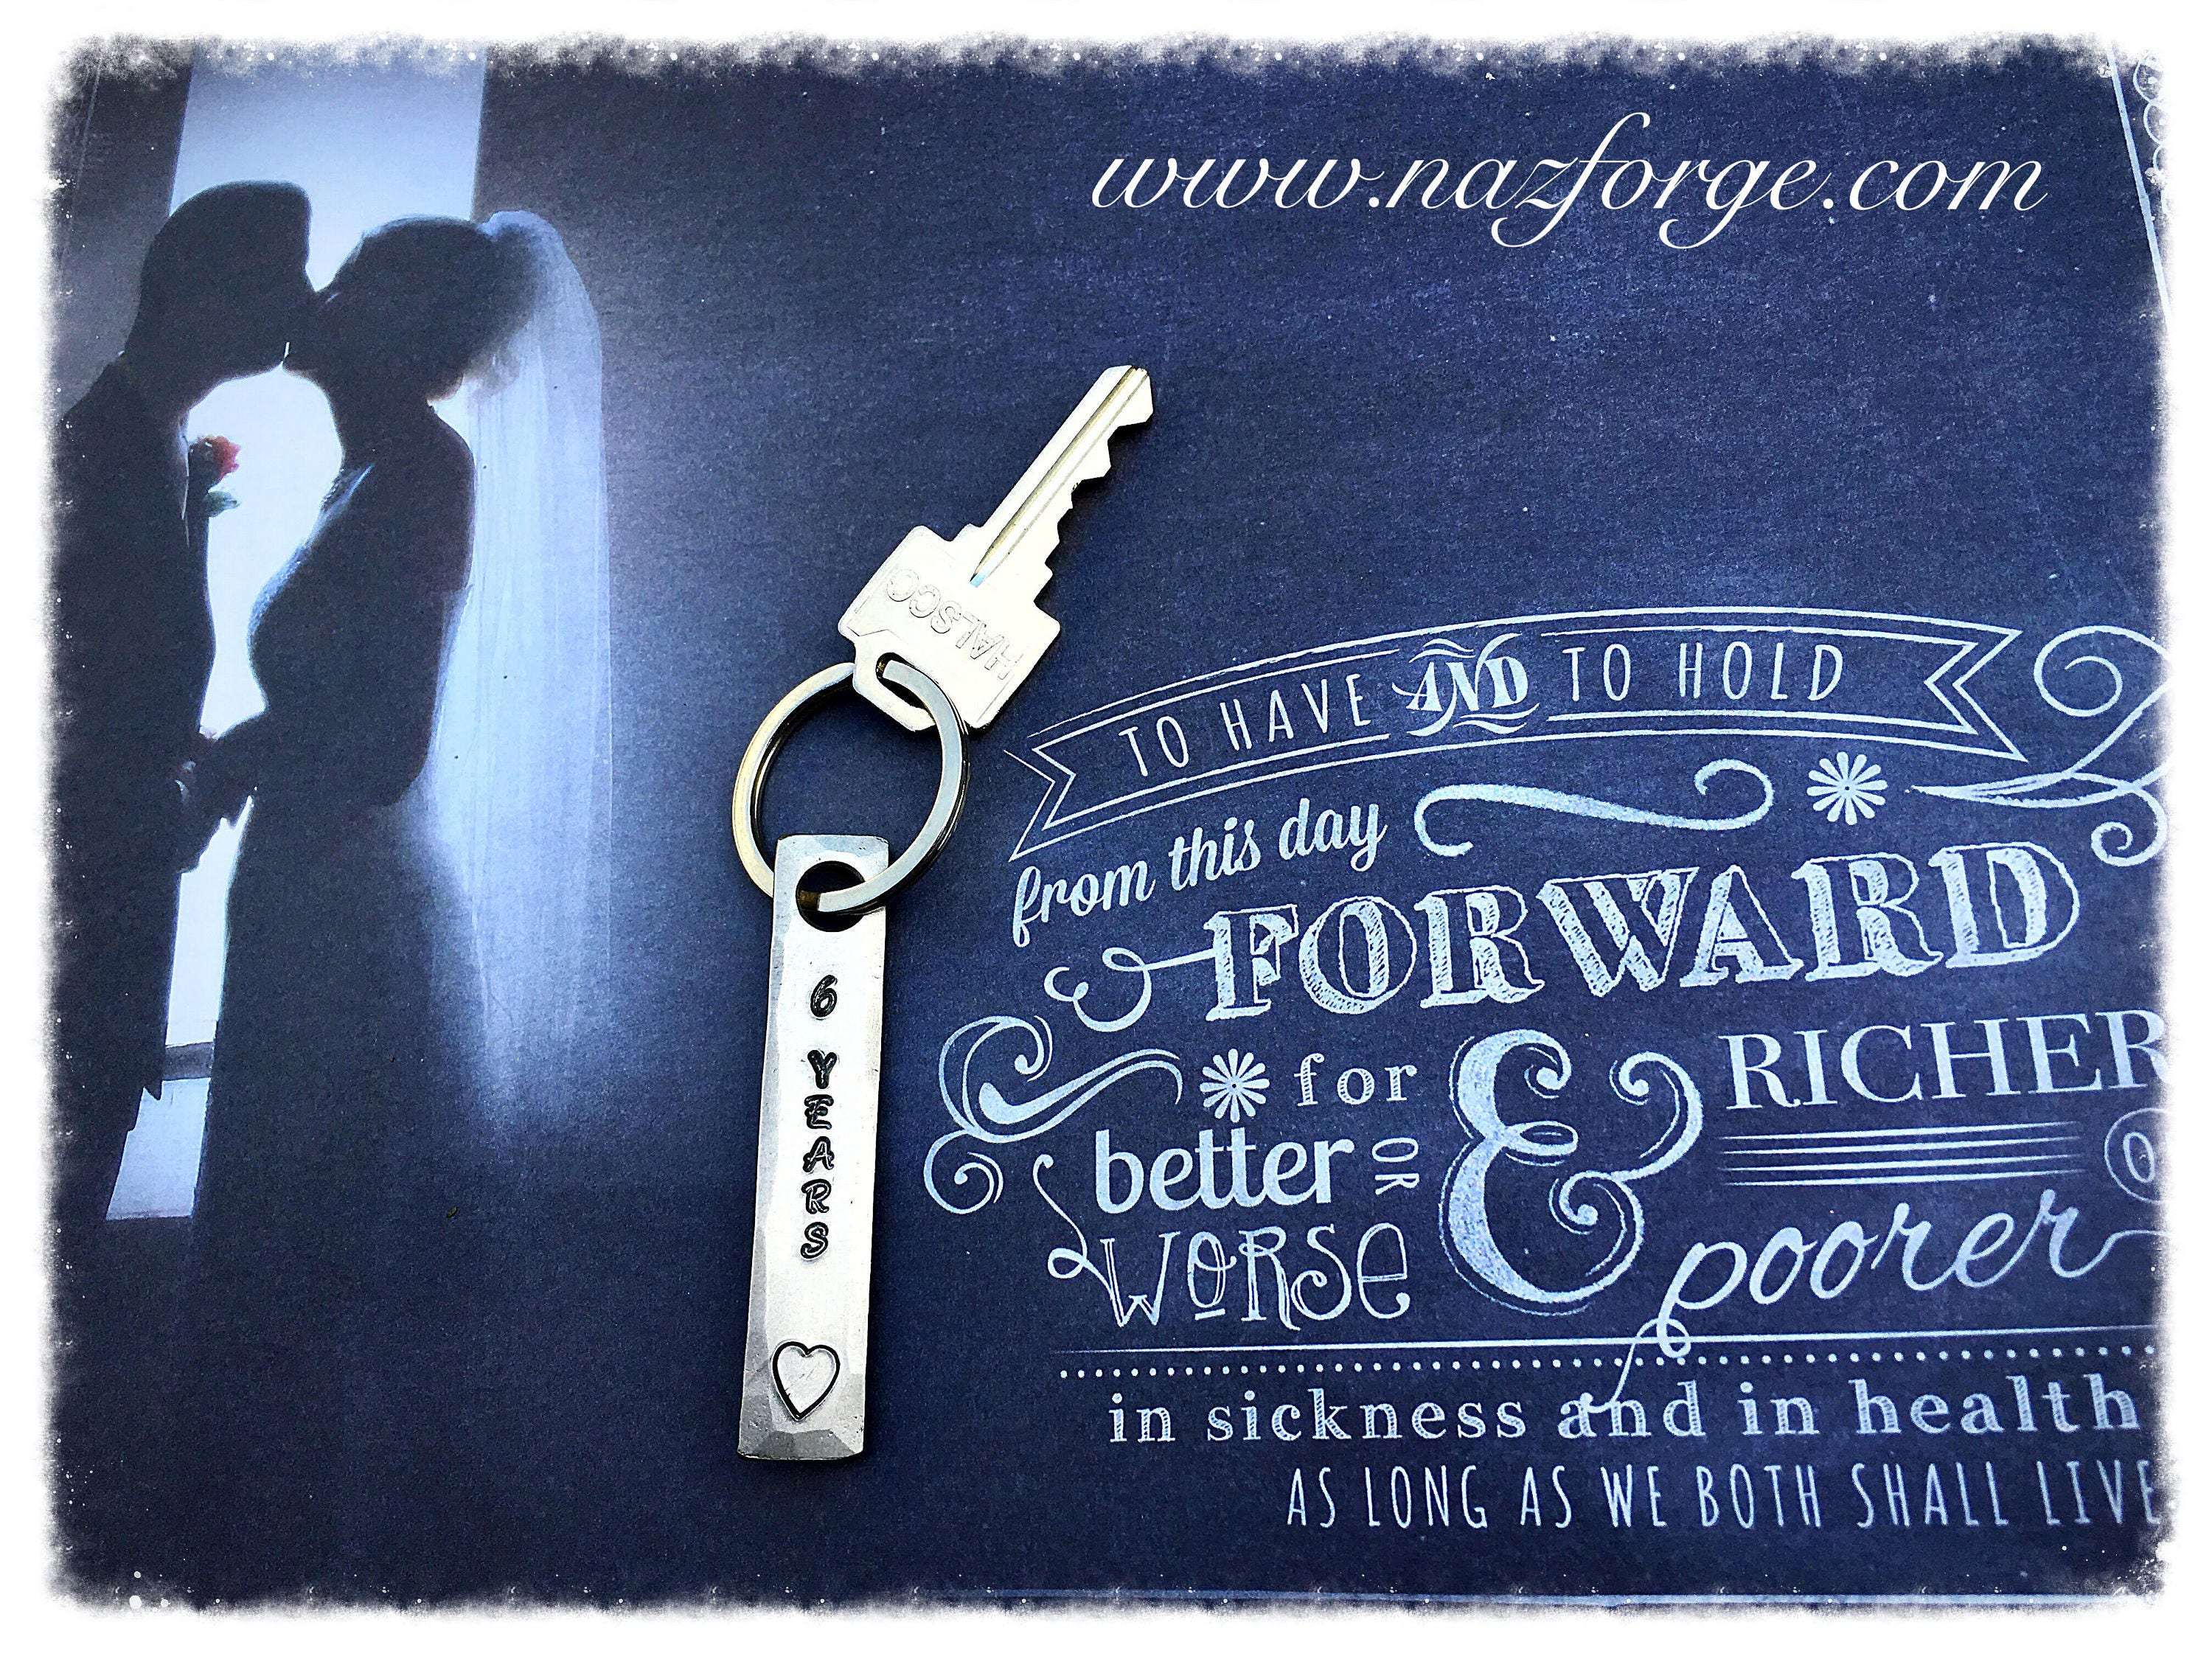 Wedding Anniversary Gifts 6 Years: 6th Year Iron Wedding Anniversary Keychain Gift Idea For